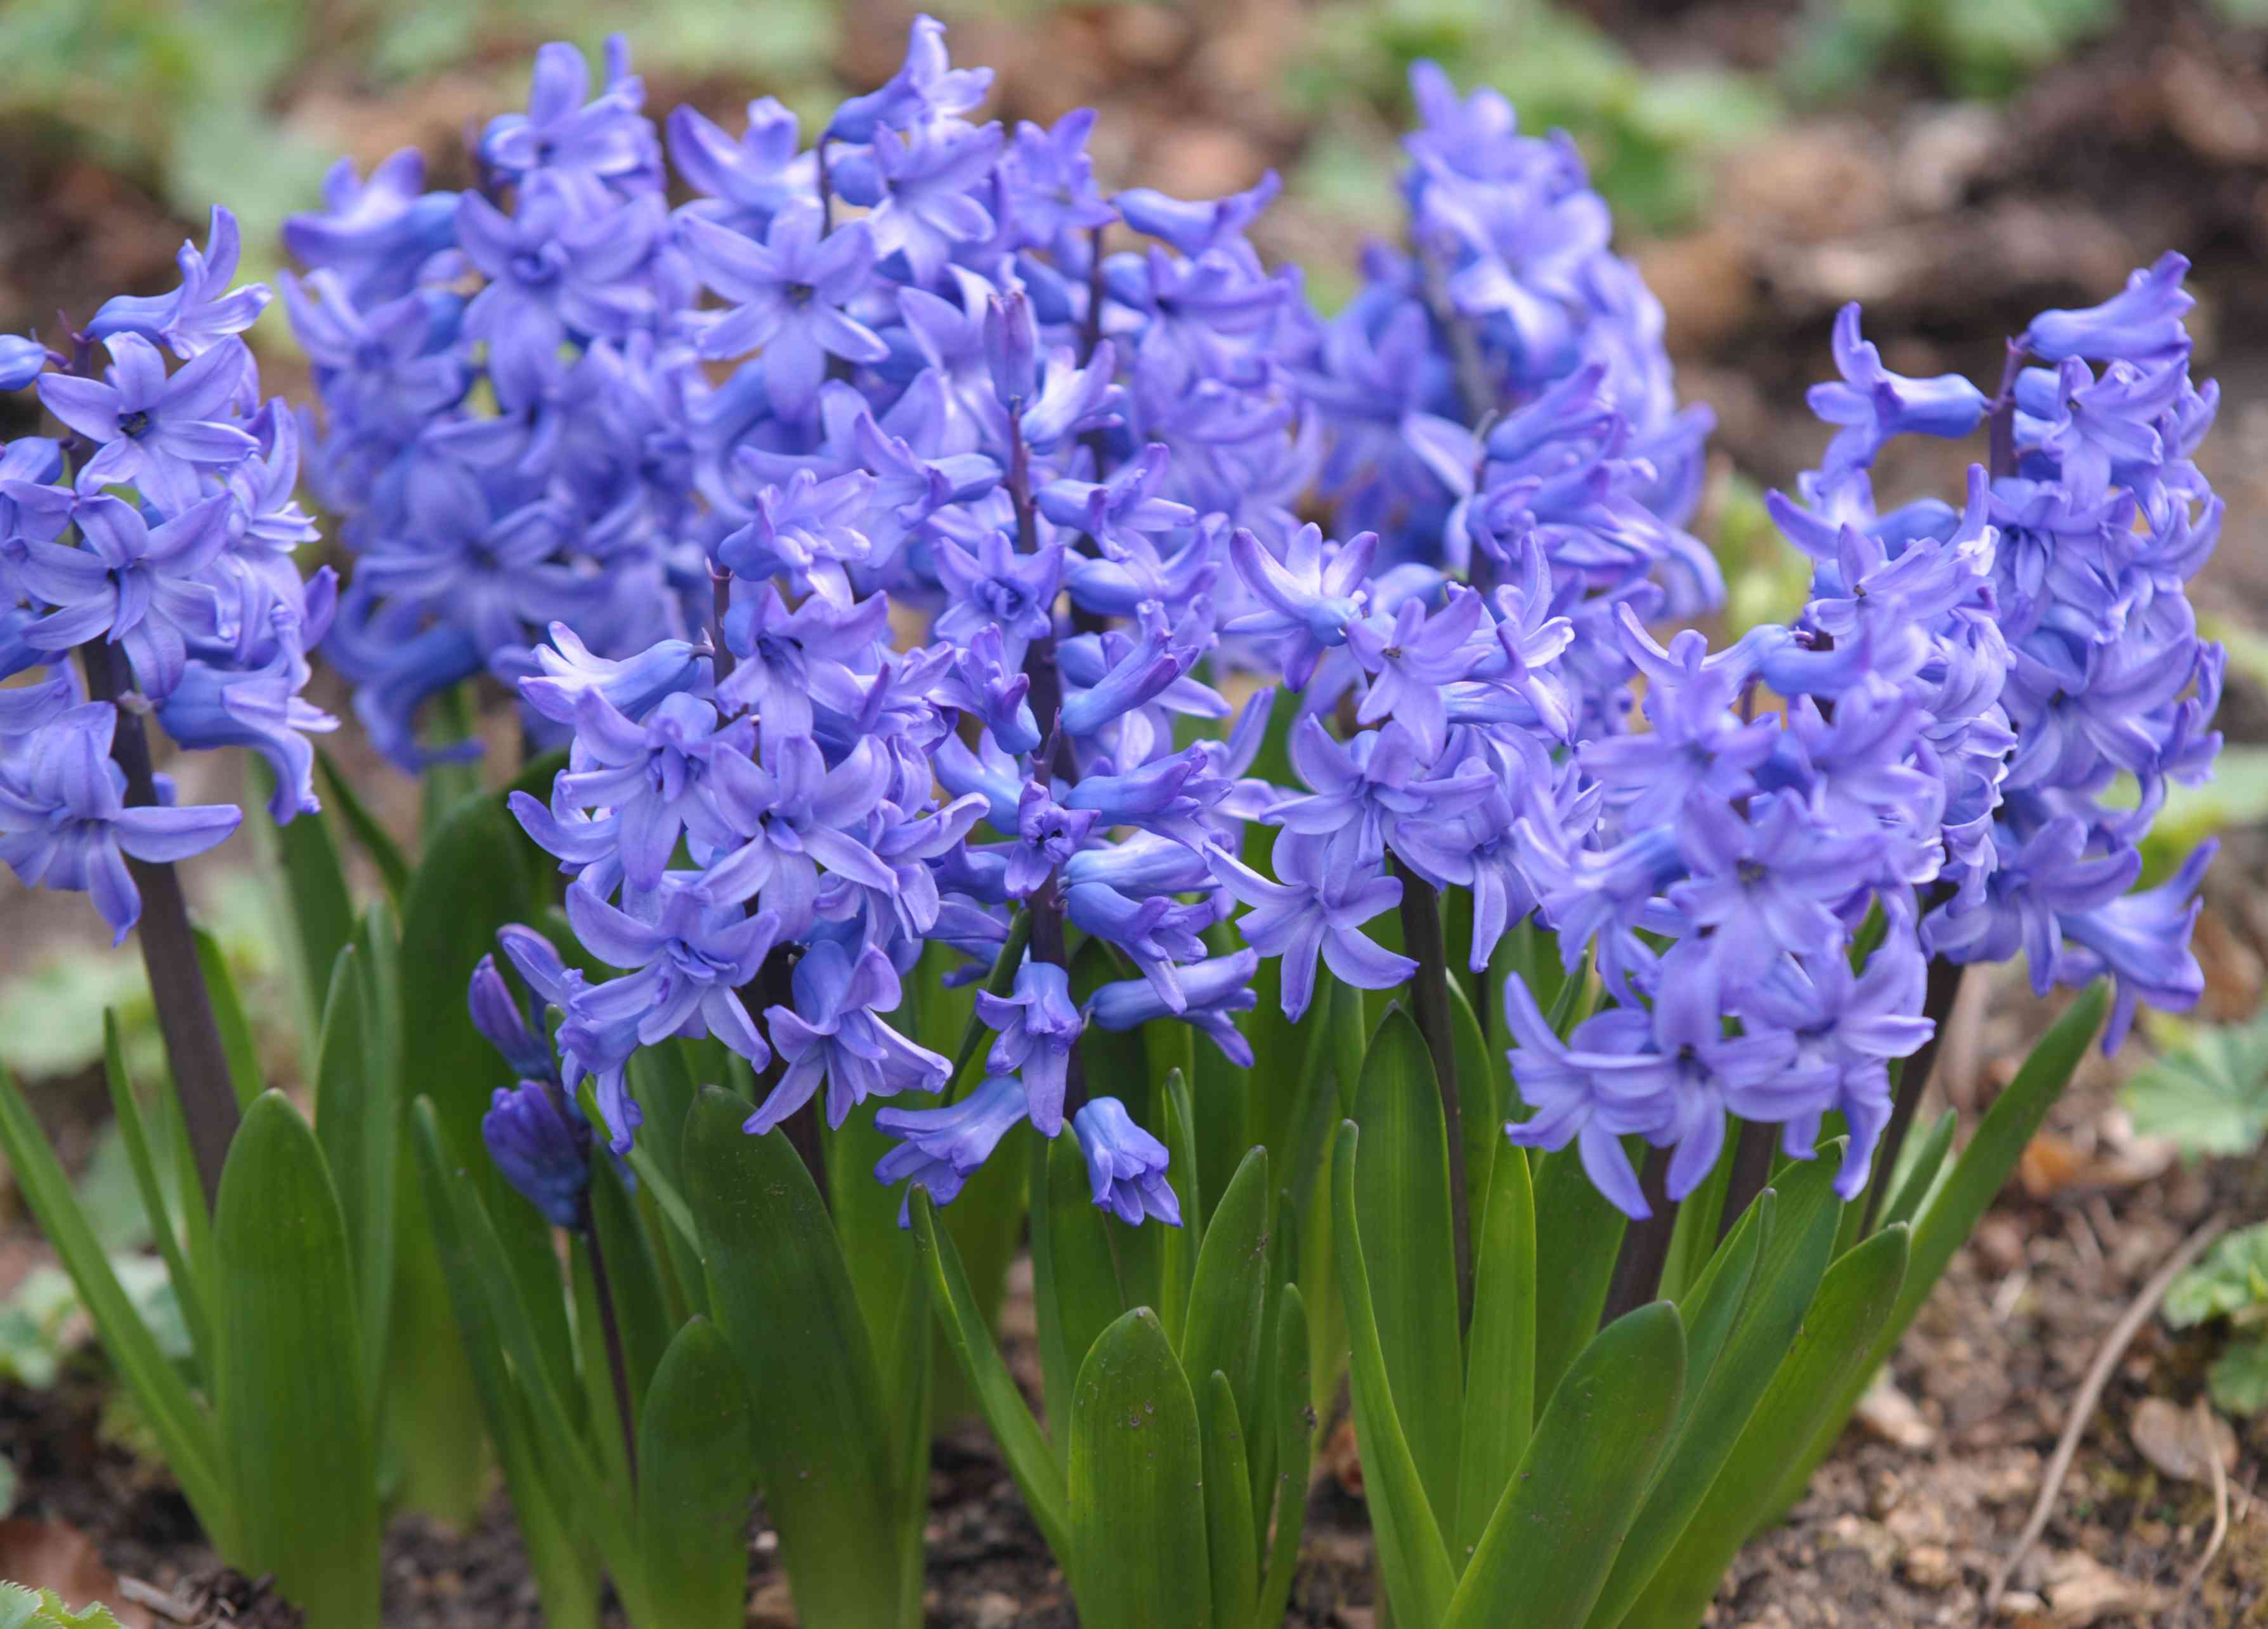 Purple hyacinth flowers with small clustered petals